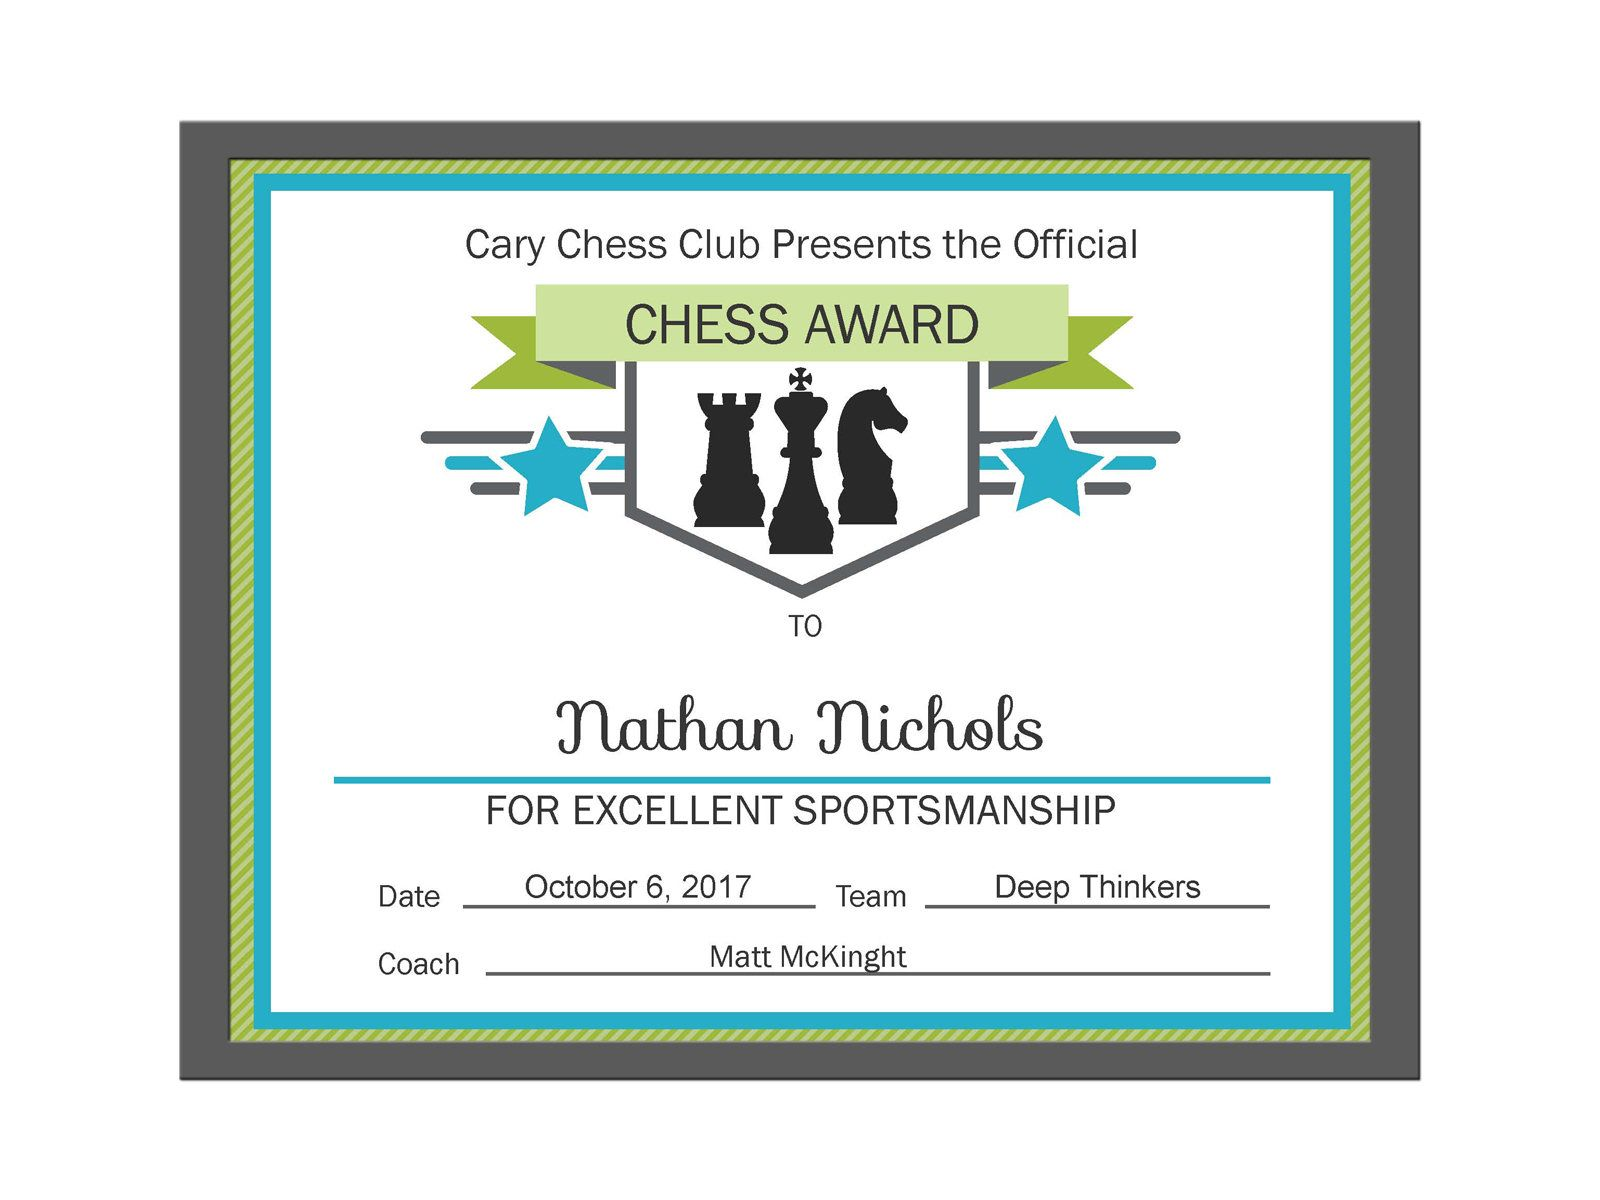 Editable pdf sports game team chess certificate award template in 3 editable pdf sports game team chess certificate award template in 3 colors pink blue and yelopaper Images